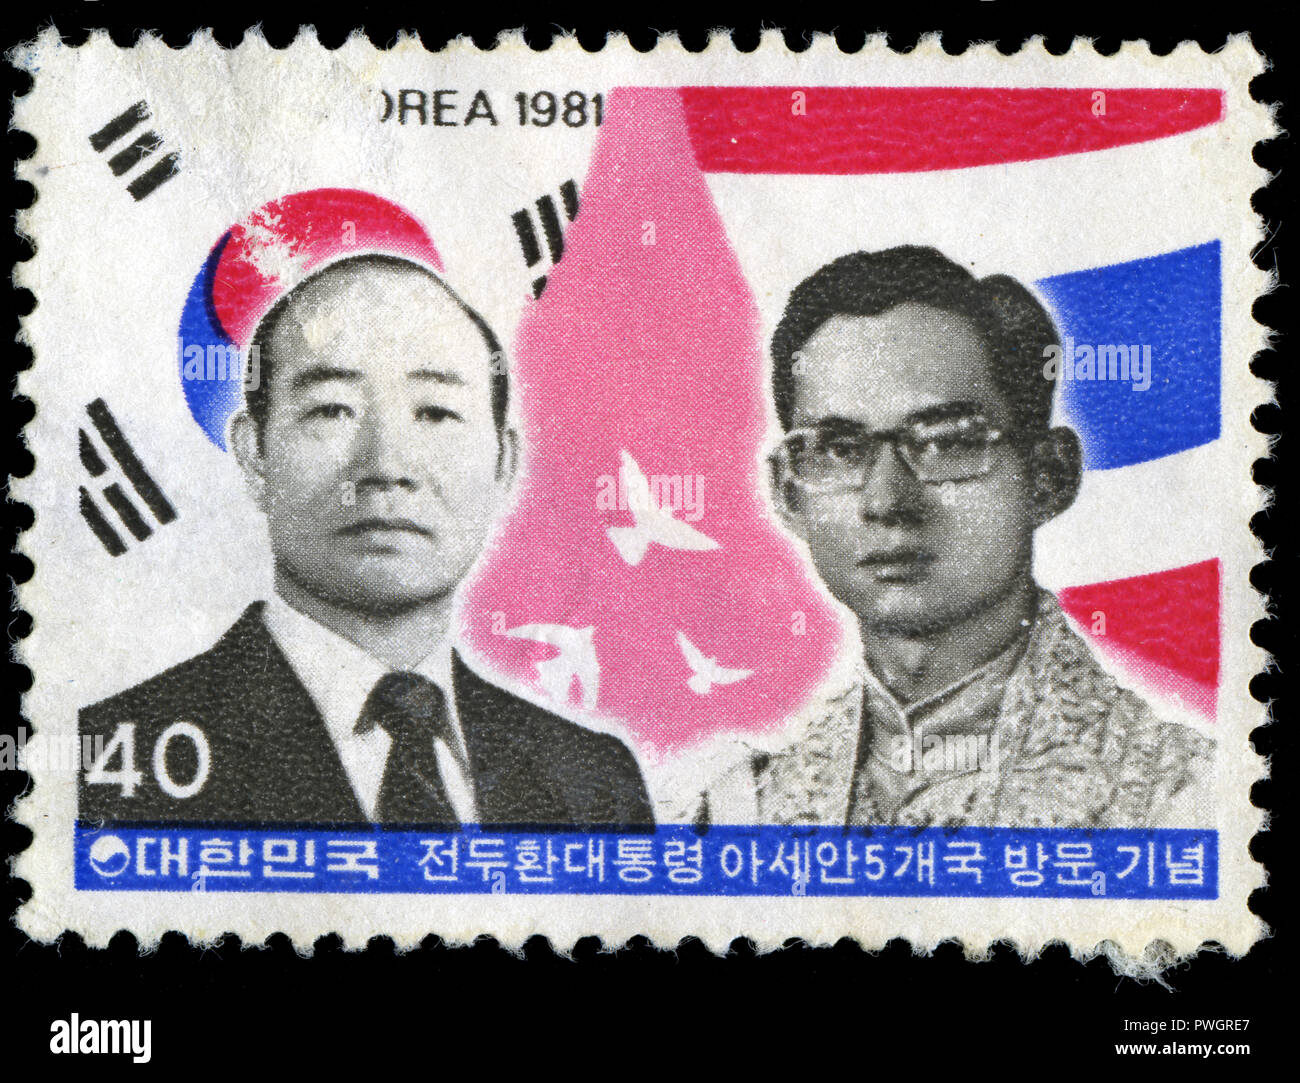 Postmarked stamp from South Korea in the President's visit to ASEAN countries series issued in 1981 - Stock Image